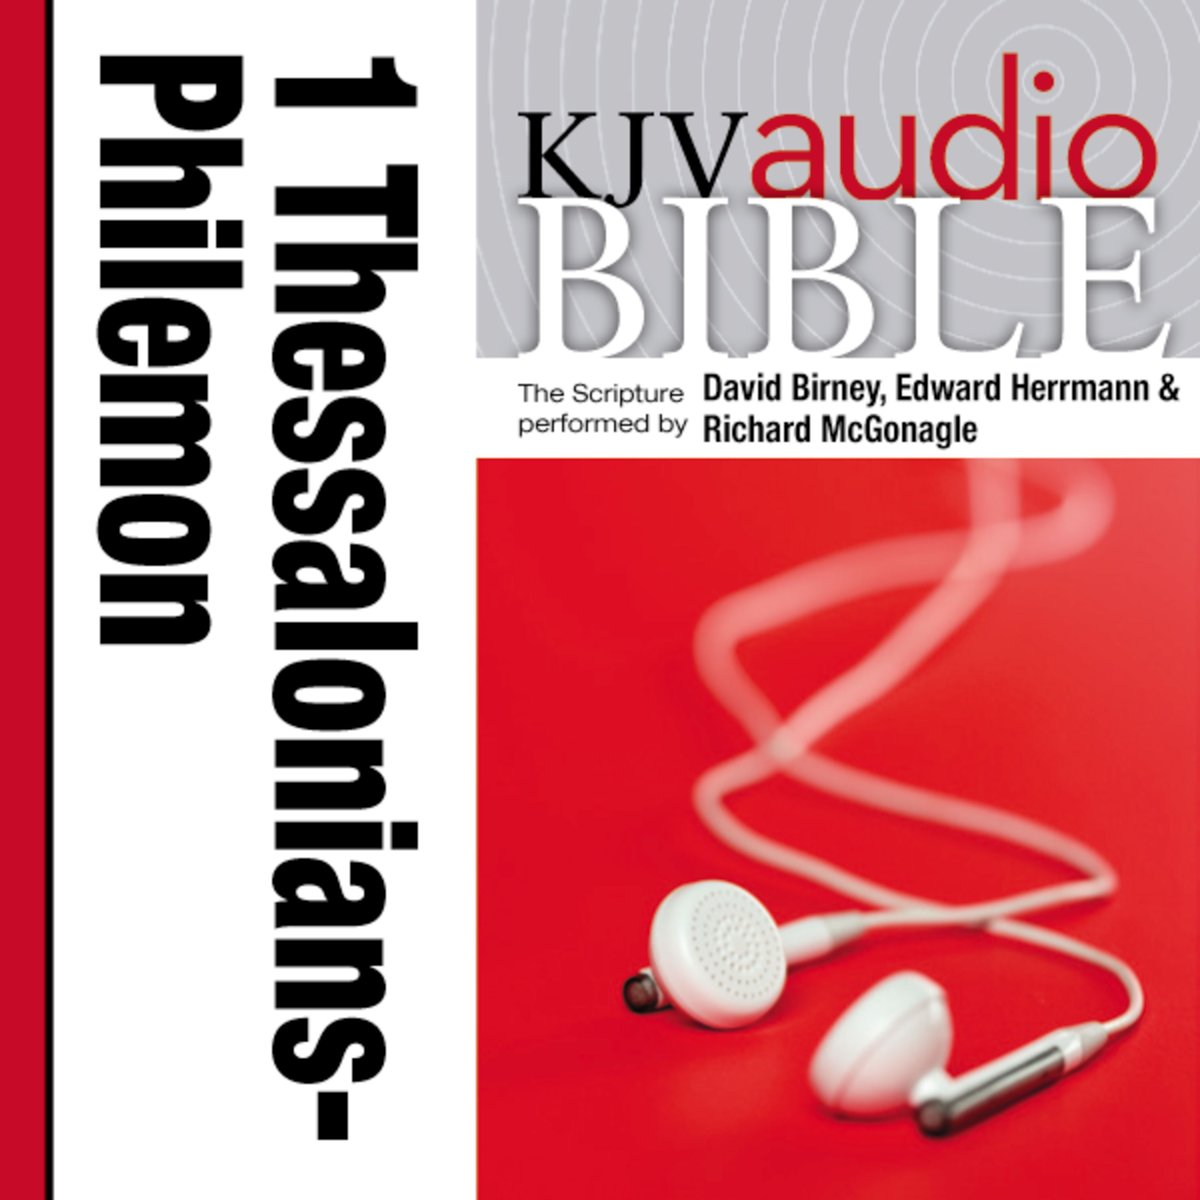 Pure Voice Audio Bible - King James Version, KJV: (35) 1 and 2 Thessalonians, 1 and 2 Timothy, Titus, and Philemon